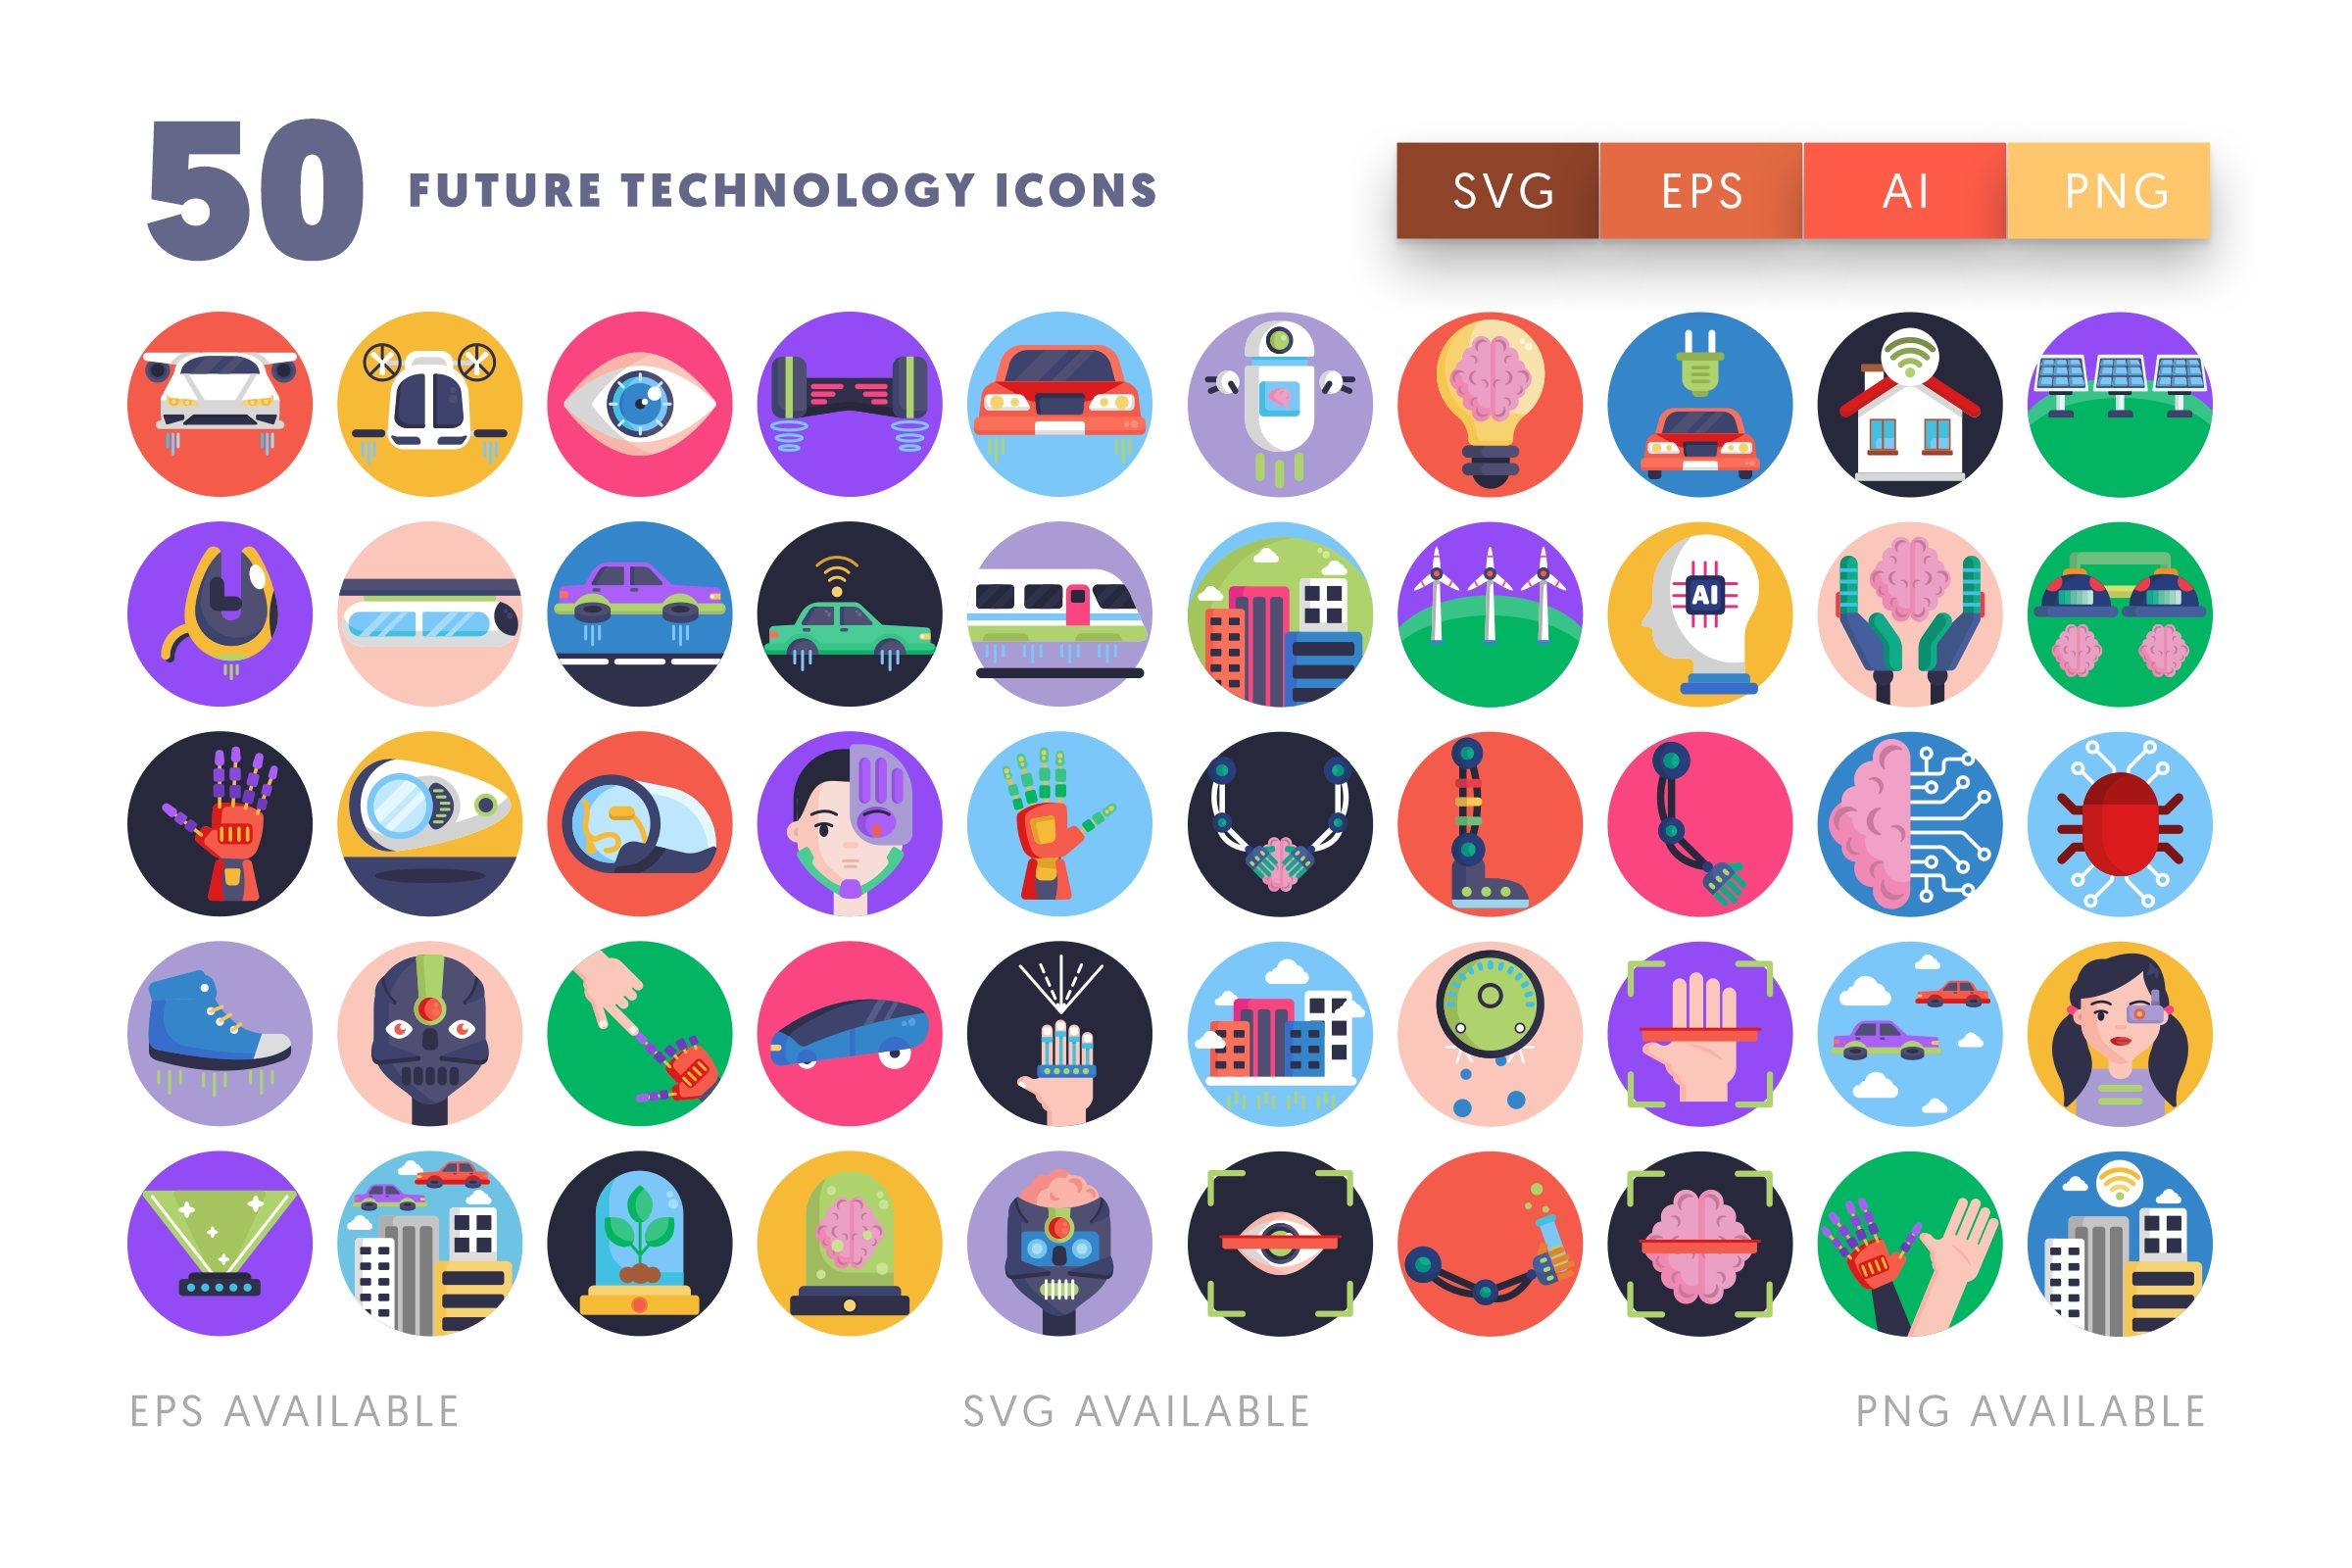 Future Technology icons png/svg/eps